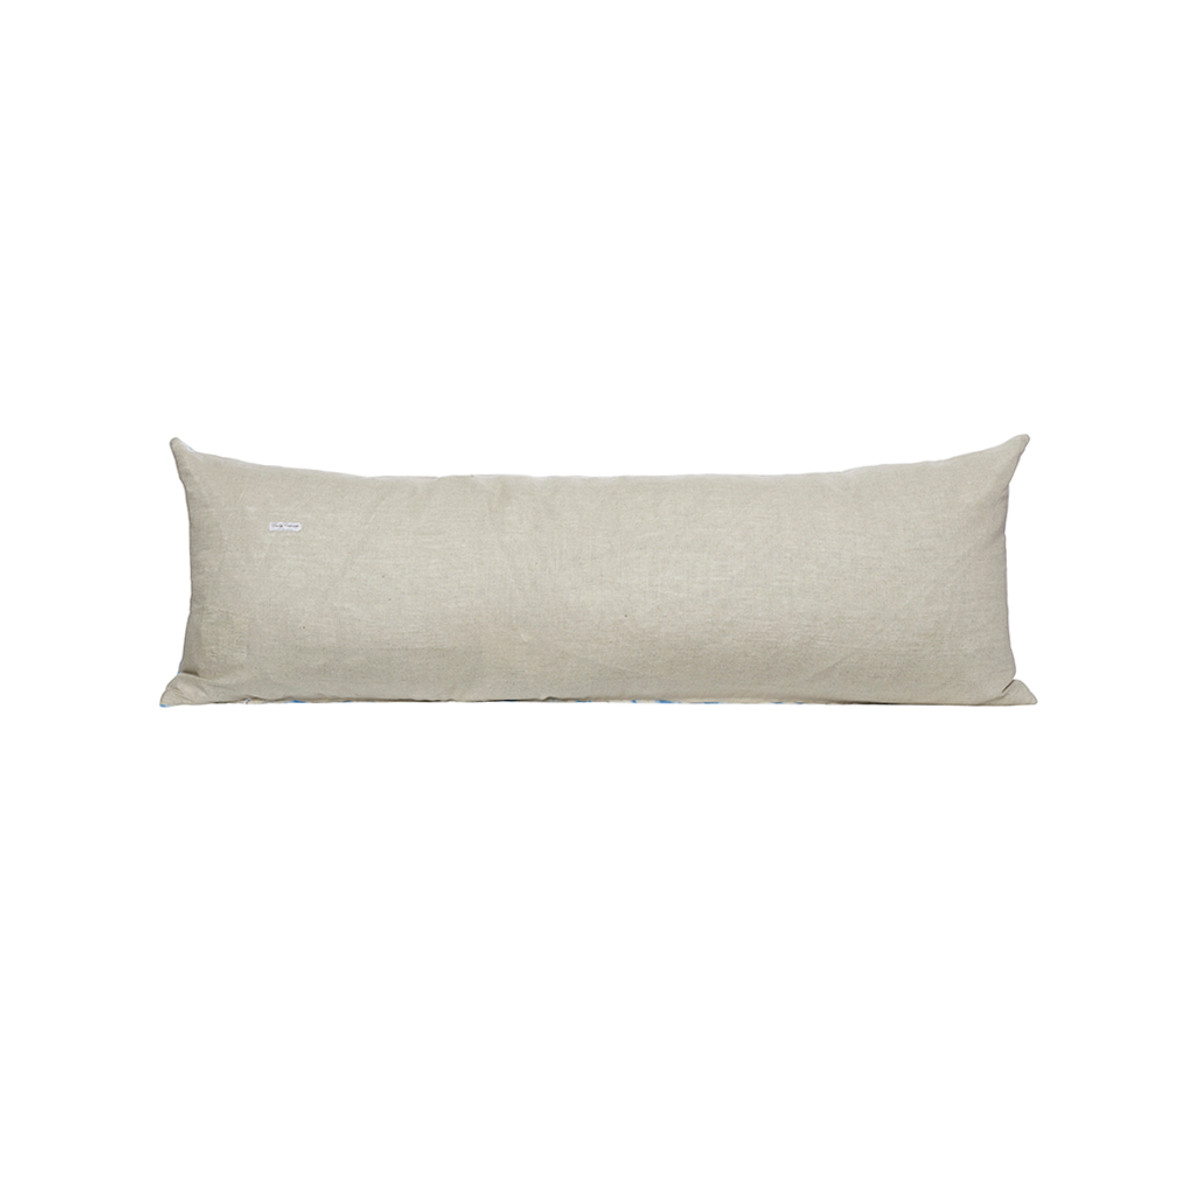 Linen Pillow Back 14 x 36